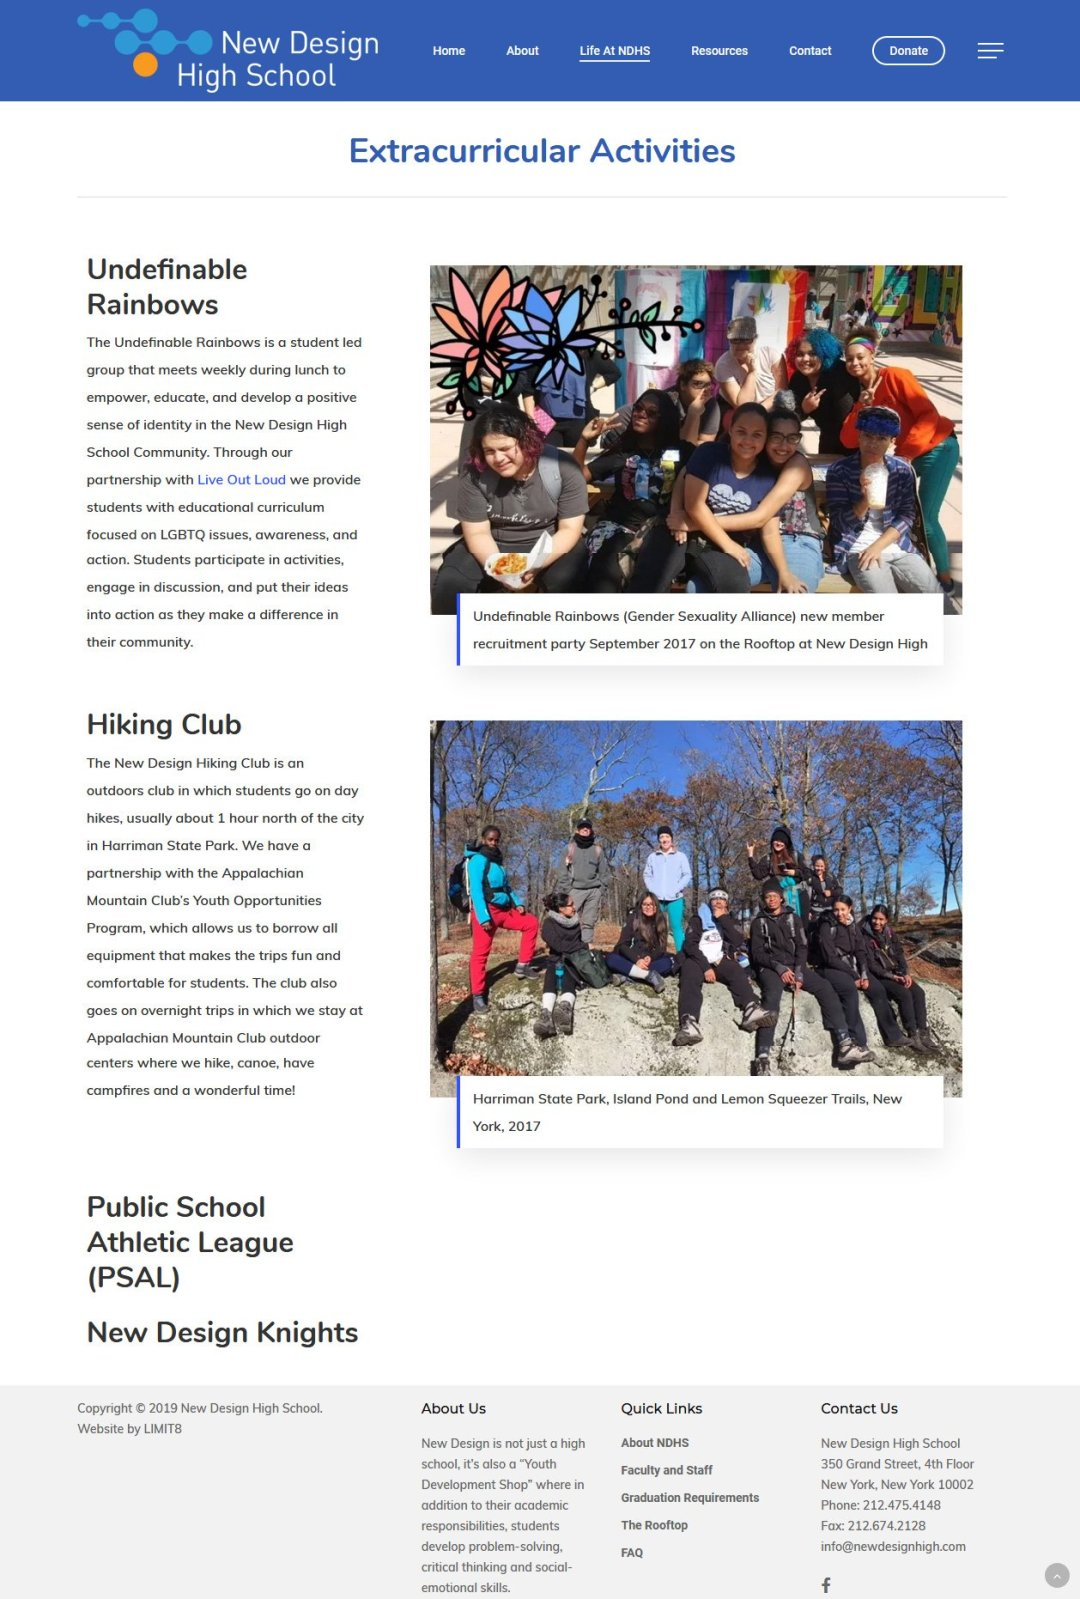 New Design High School, Extracurricular page redesigned by LIMIT8 Design